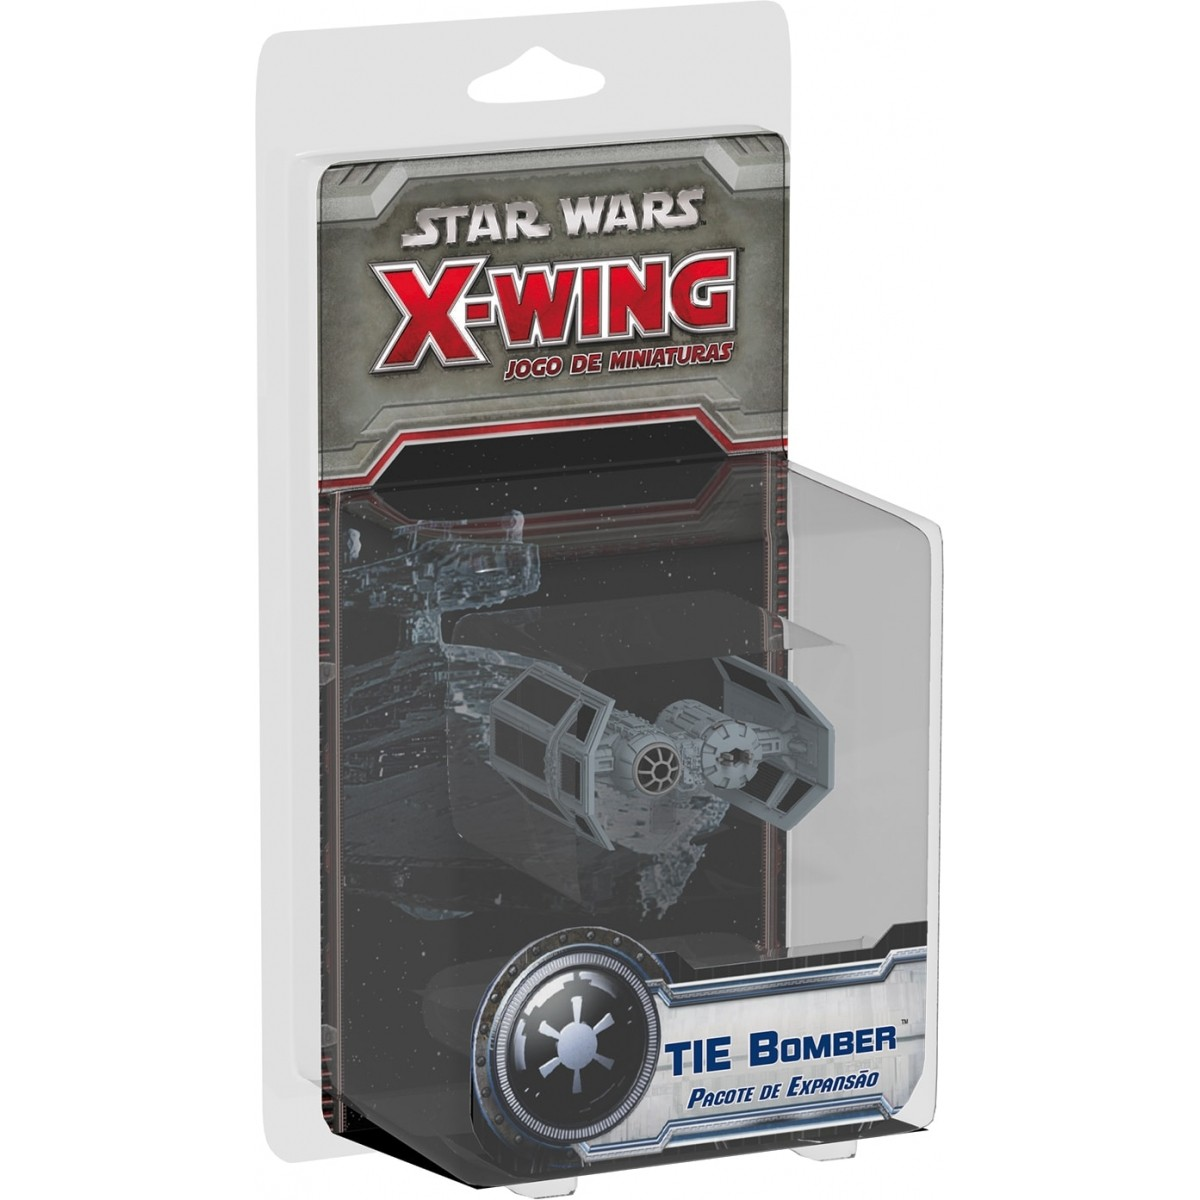 Star Wars X Wing TIE Bomber Galapagos SWX015  - Place Games